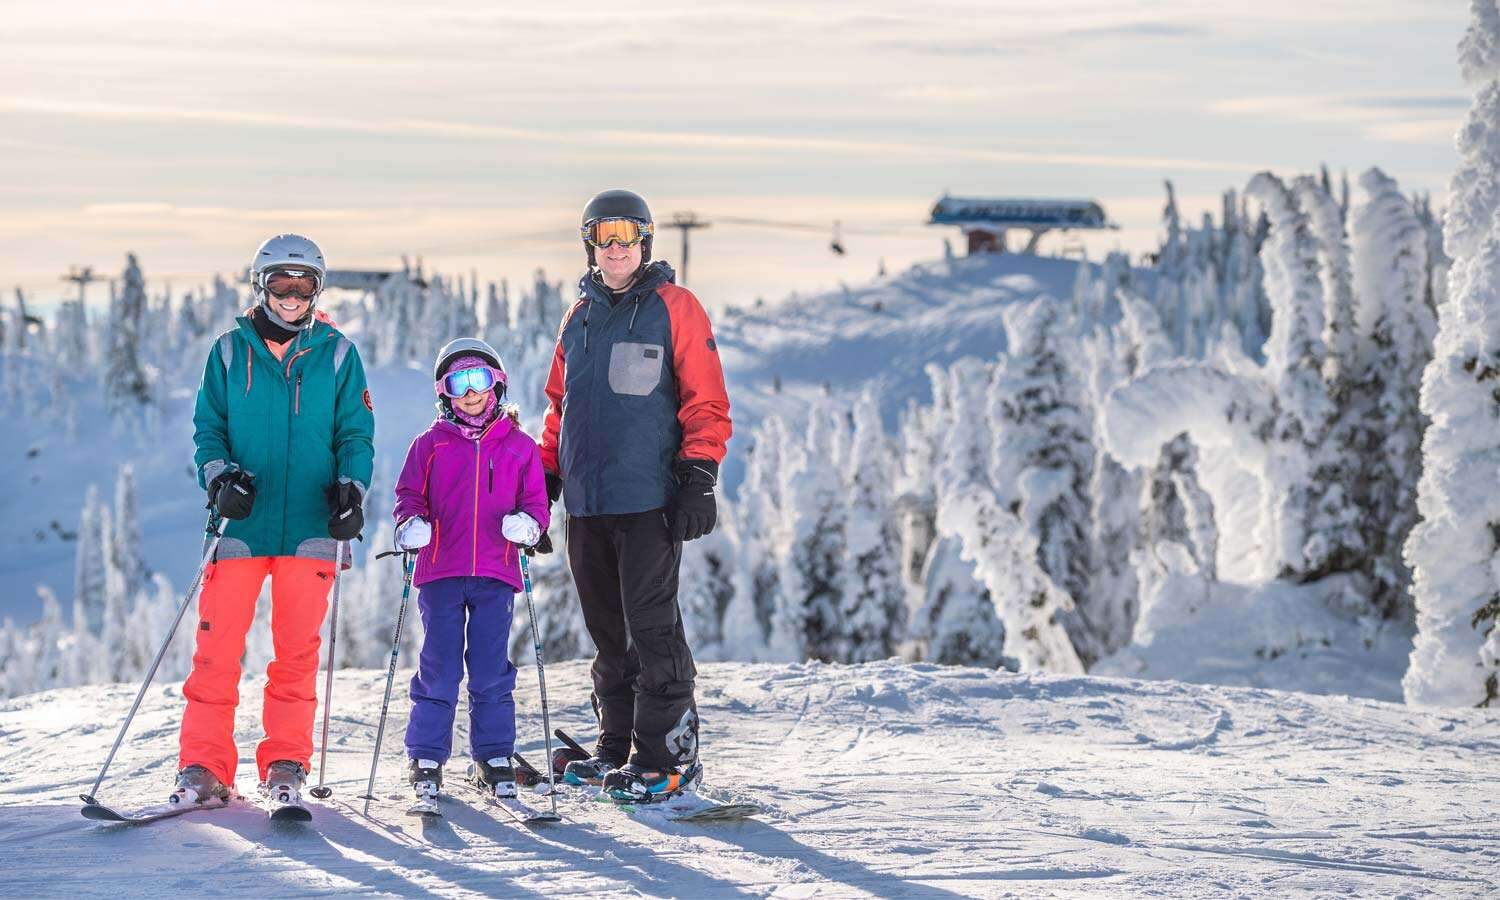 Bringing Your Kids to Big White? Here are Some Tips